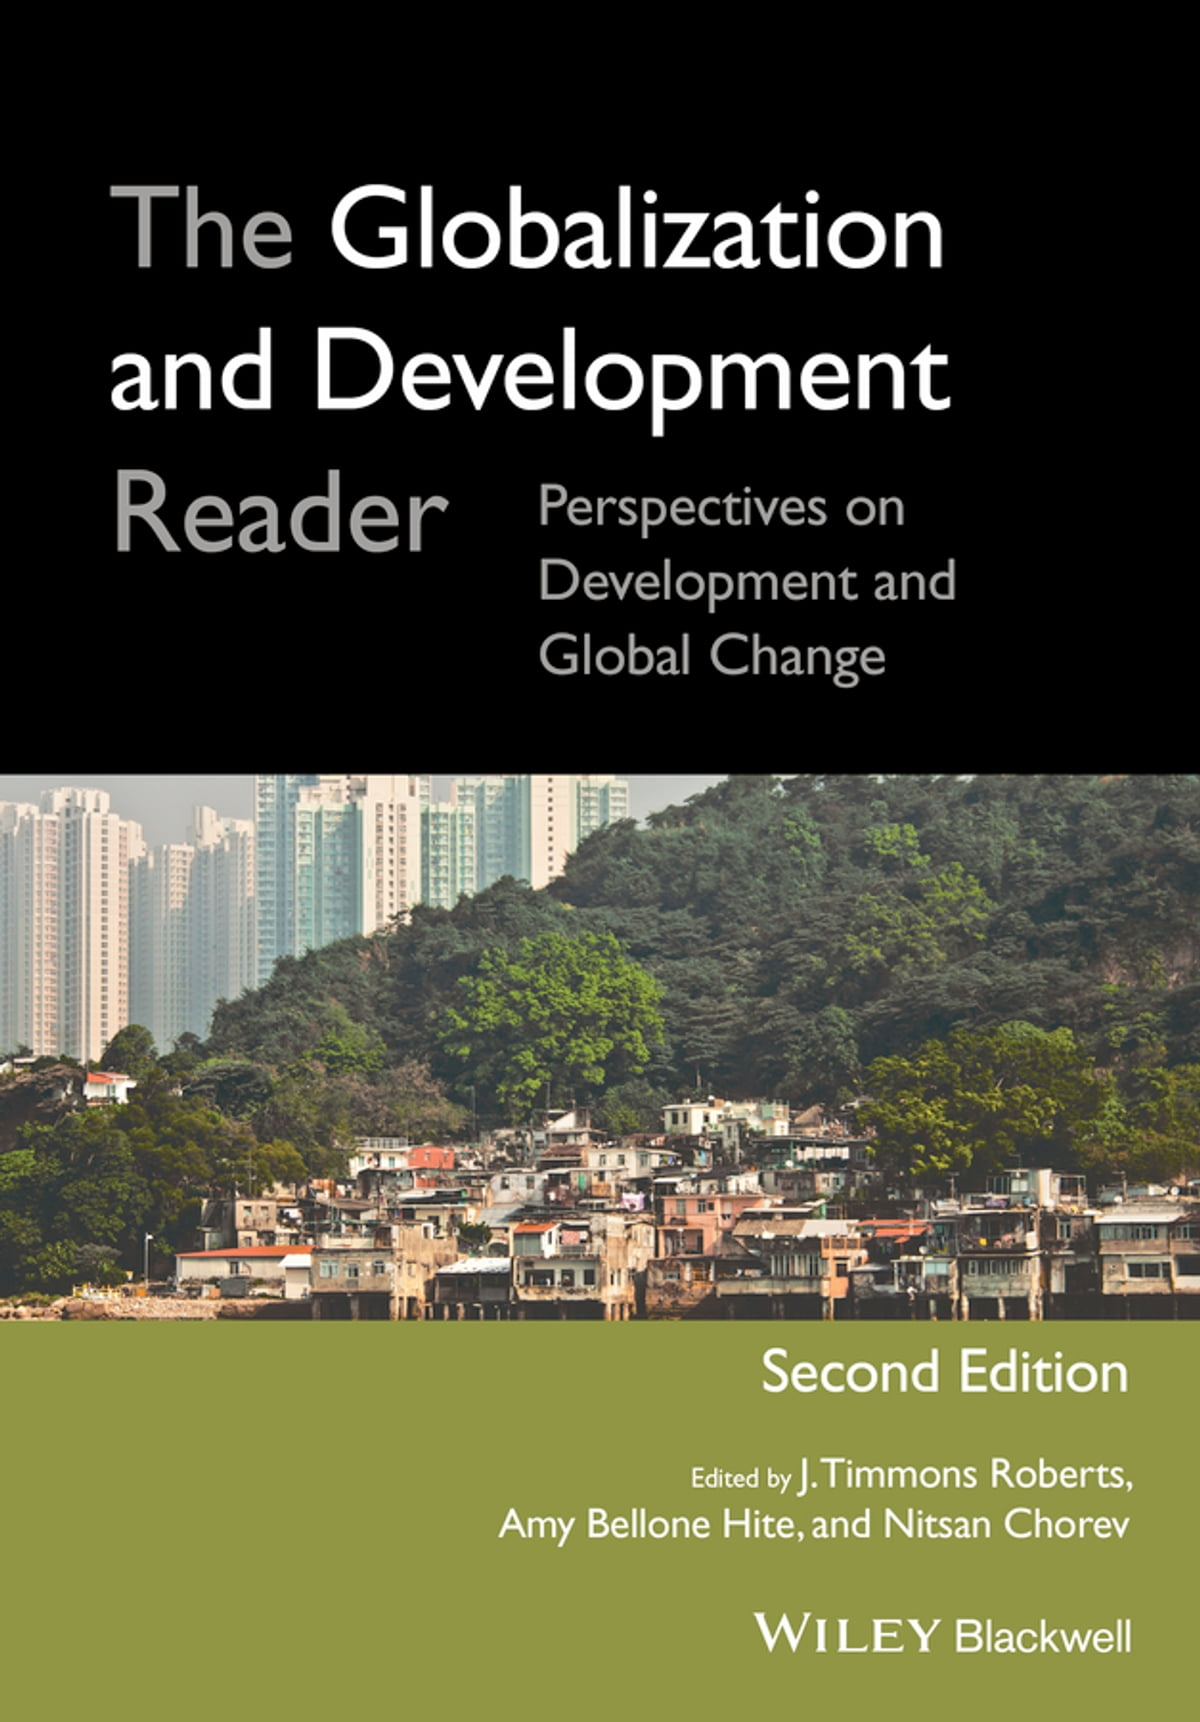 an introduction to the globalization and ideal landscapes With an innovative integration of visuals, text, and spatial graphics, introduction to contemporary geography presents a modular and highly graphical springboard to introductory geography—ideal for contemporary students and learning styles.